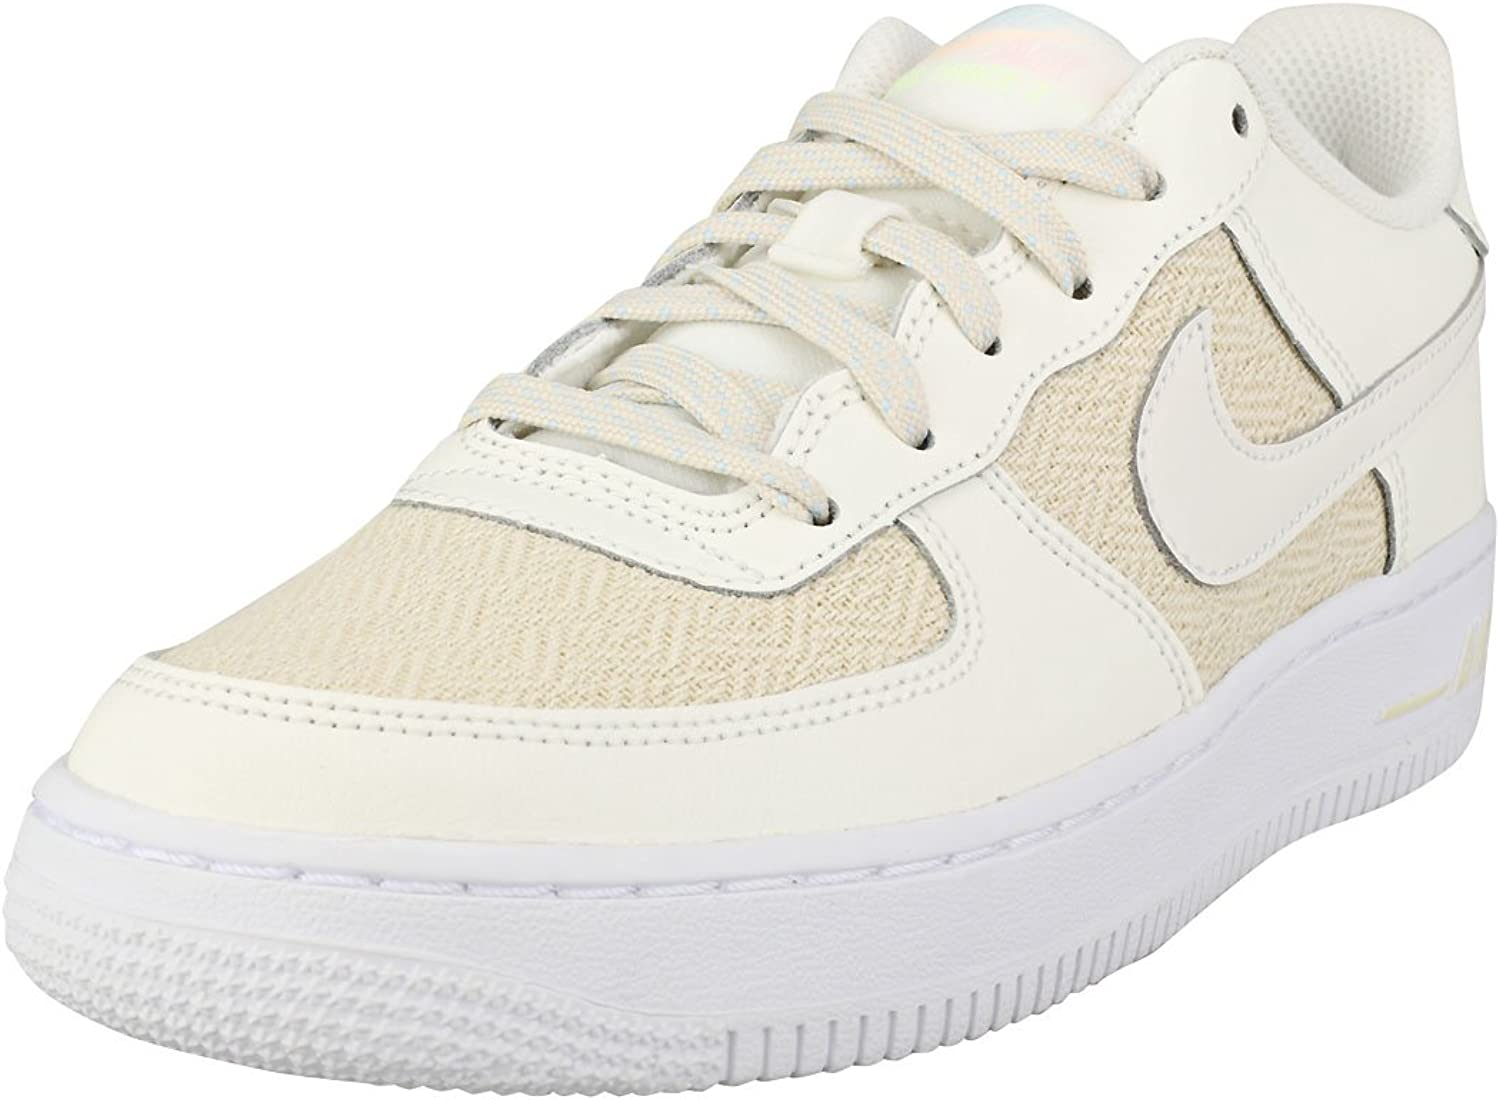 Nike Youth Air Force 1 LV8 Grade School Leather Trainers